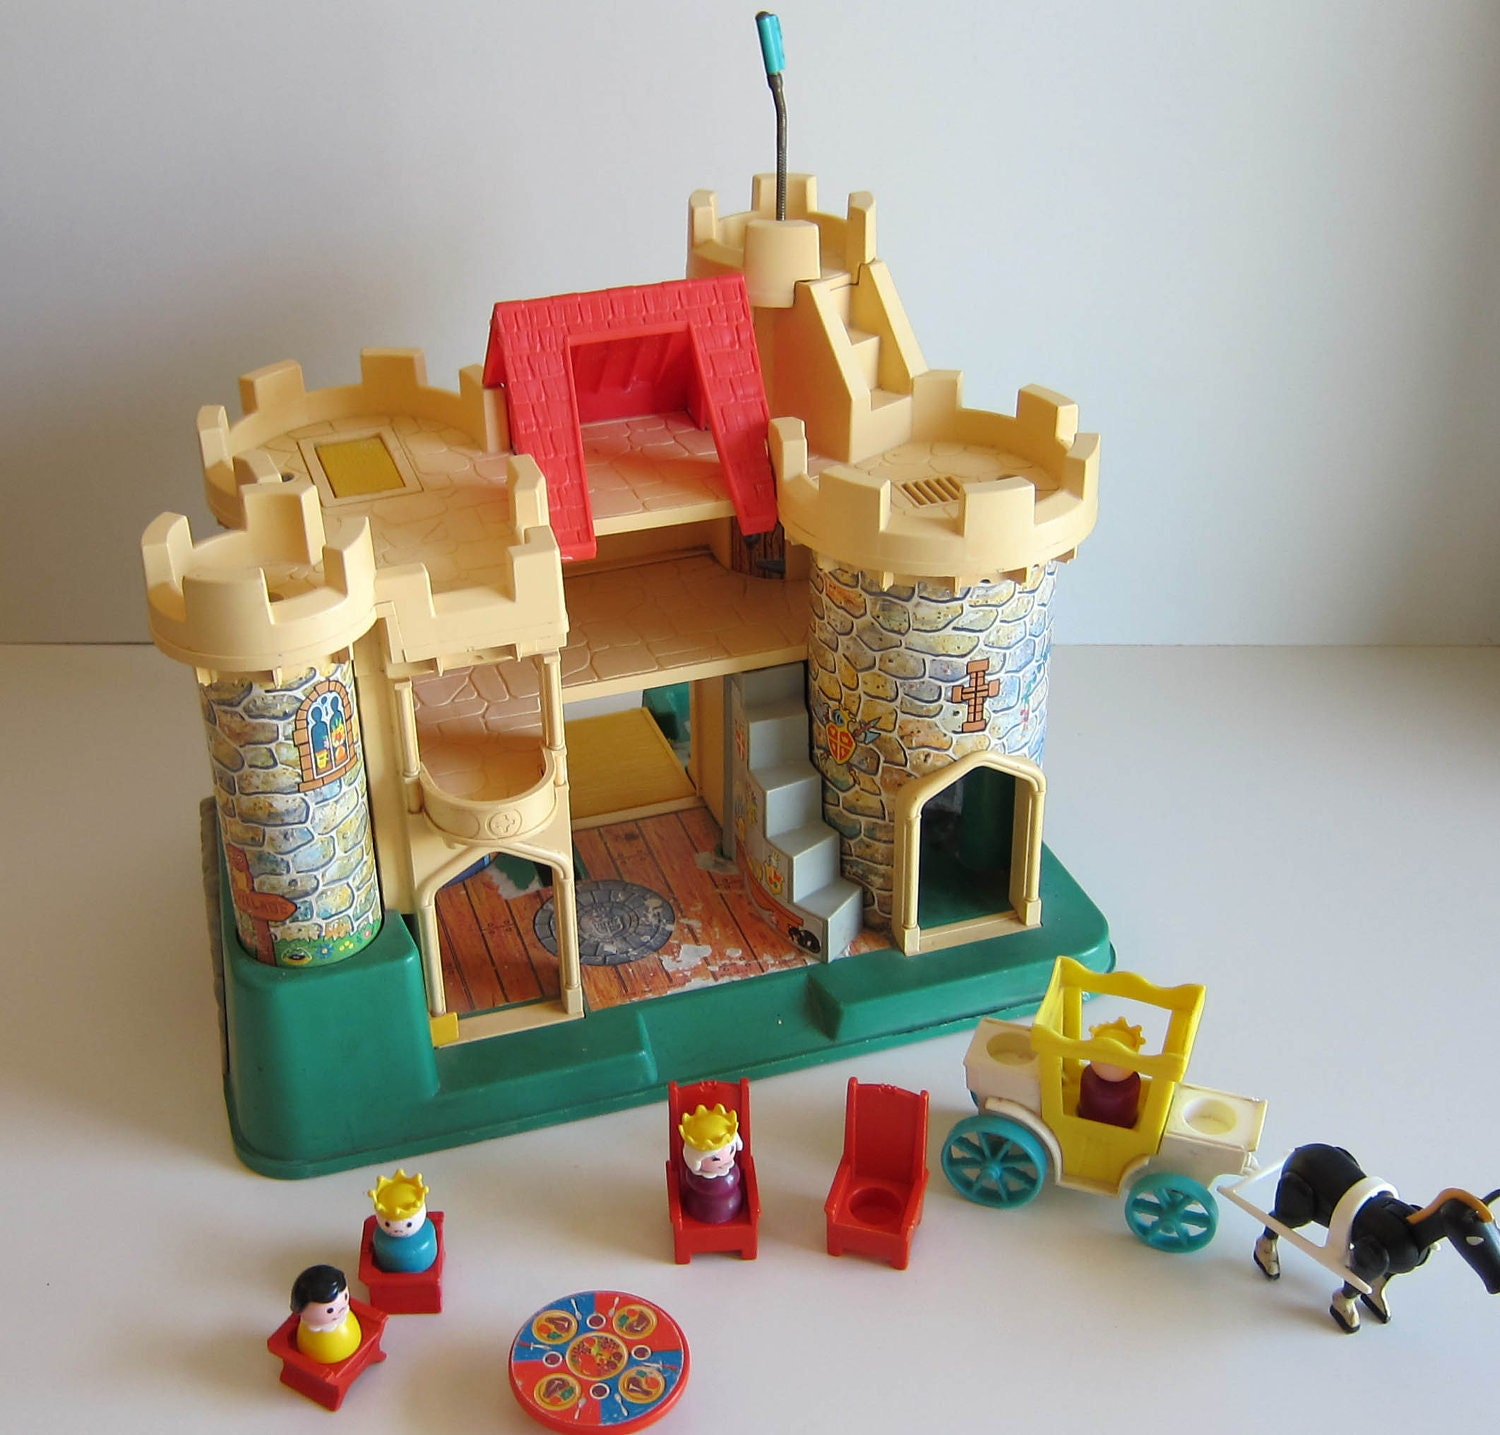 Classic Toys From The 70s : Fisher price castle vitnage s toy with little people